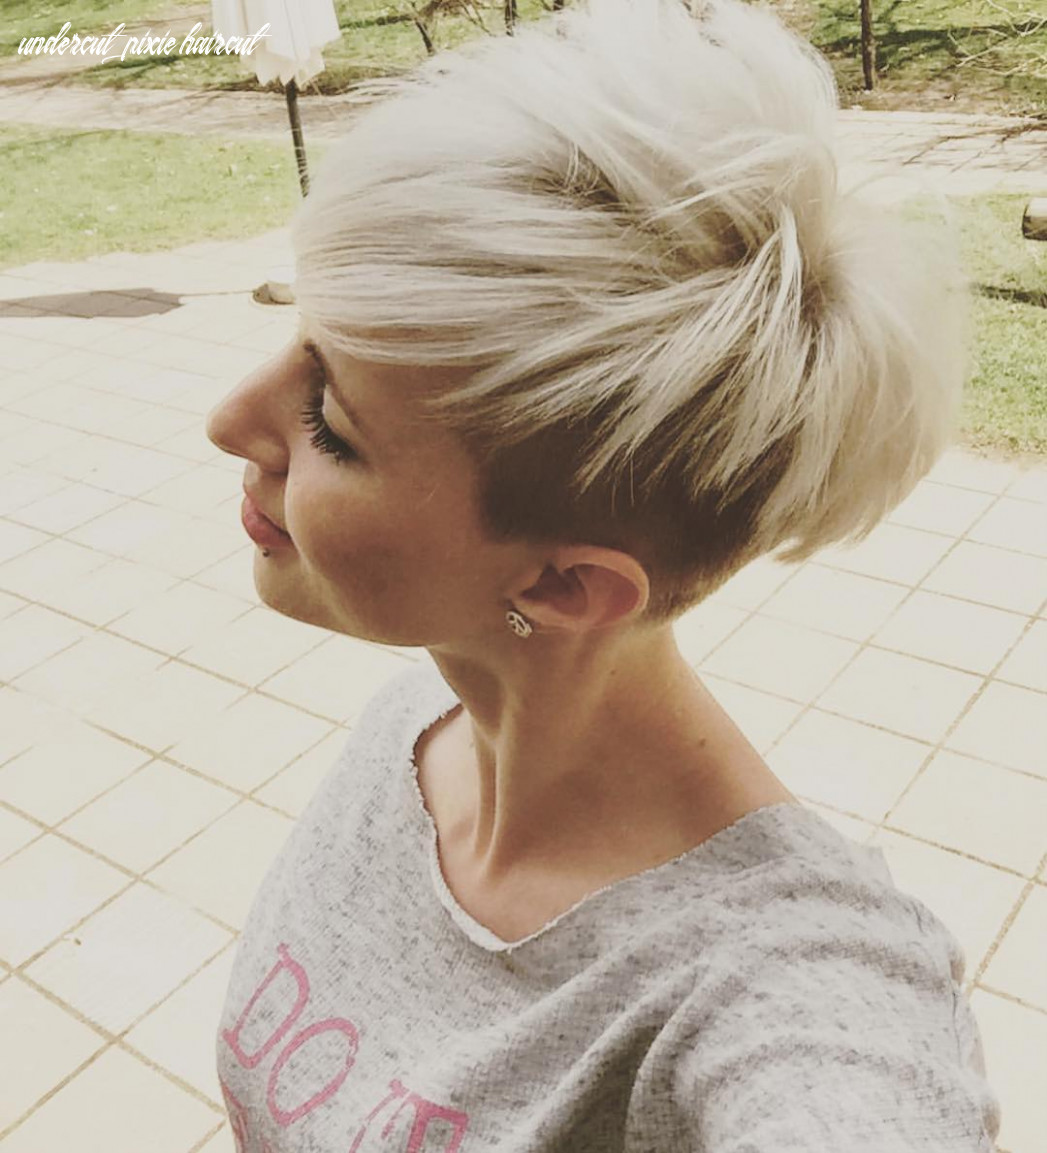 11 stylish pixie haircuts for female nicestyles undercut pixie haircut